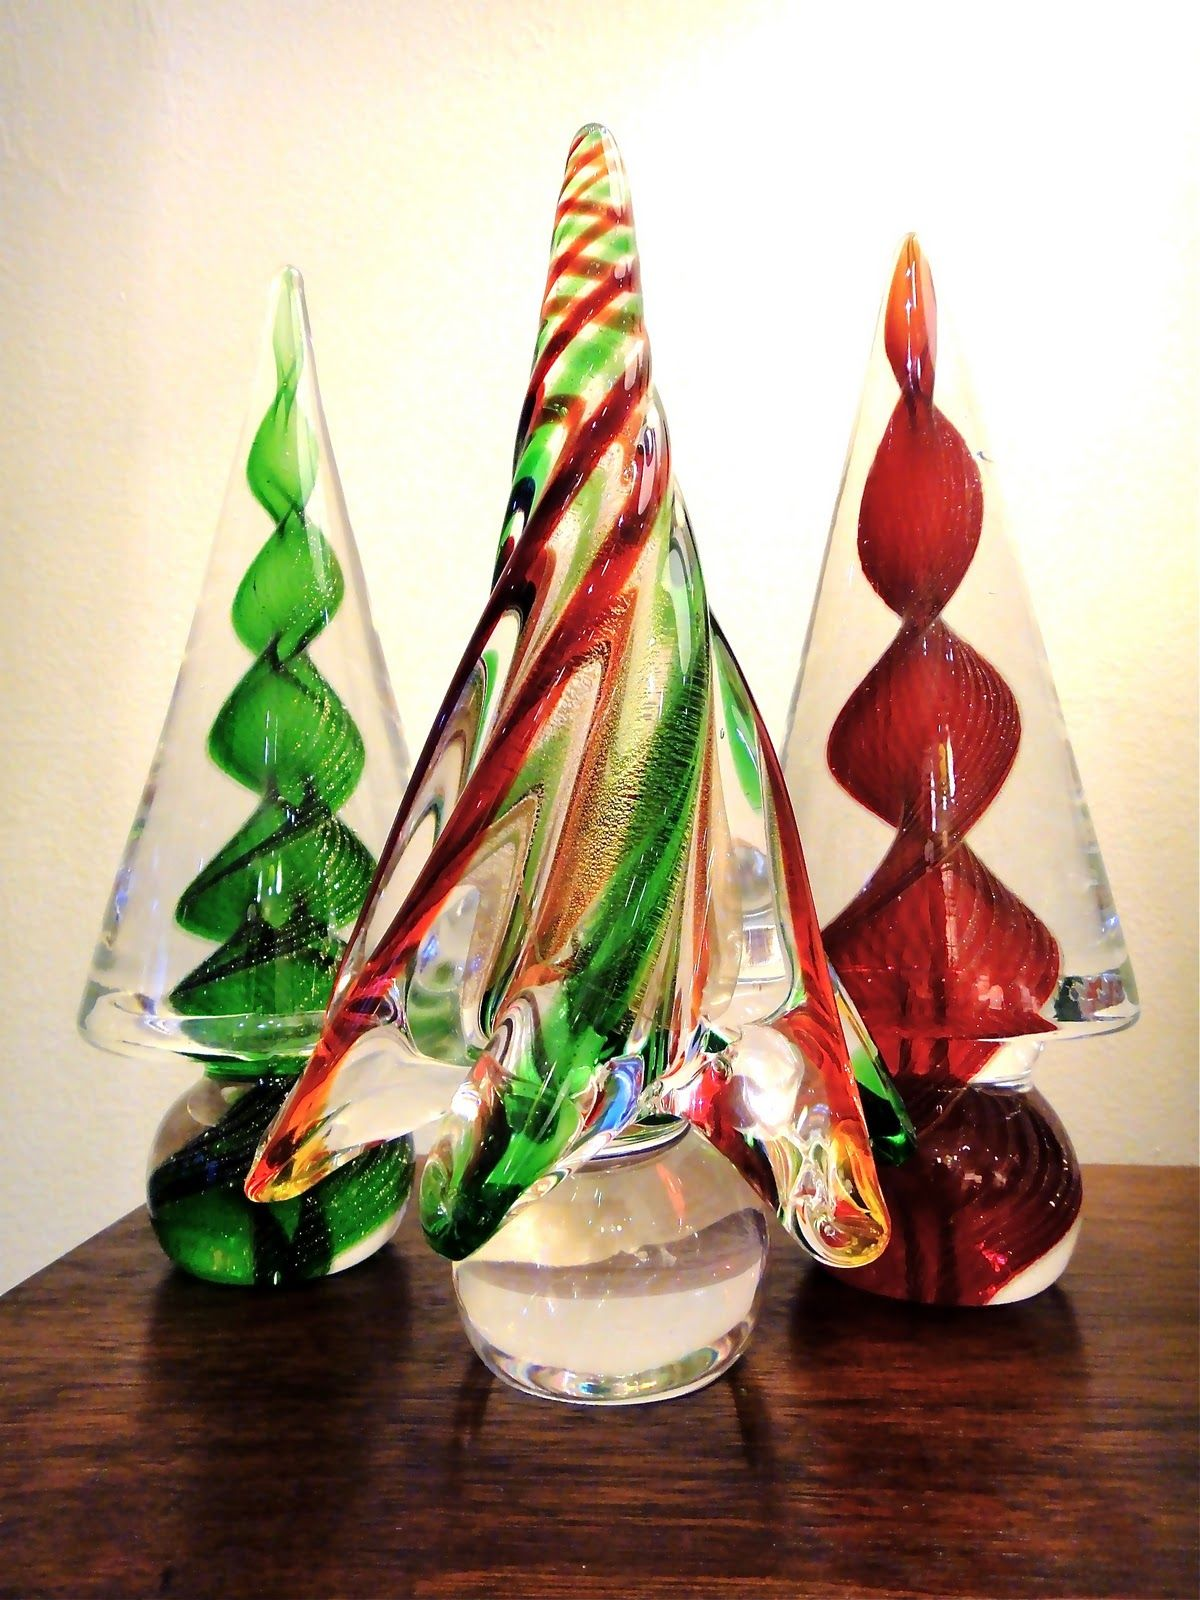 murano glass christmas trees  Art Glass from Venice Italy